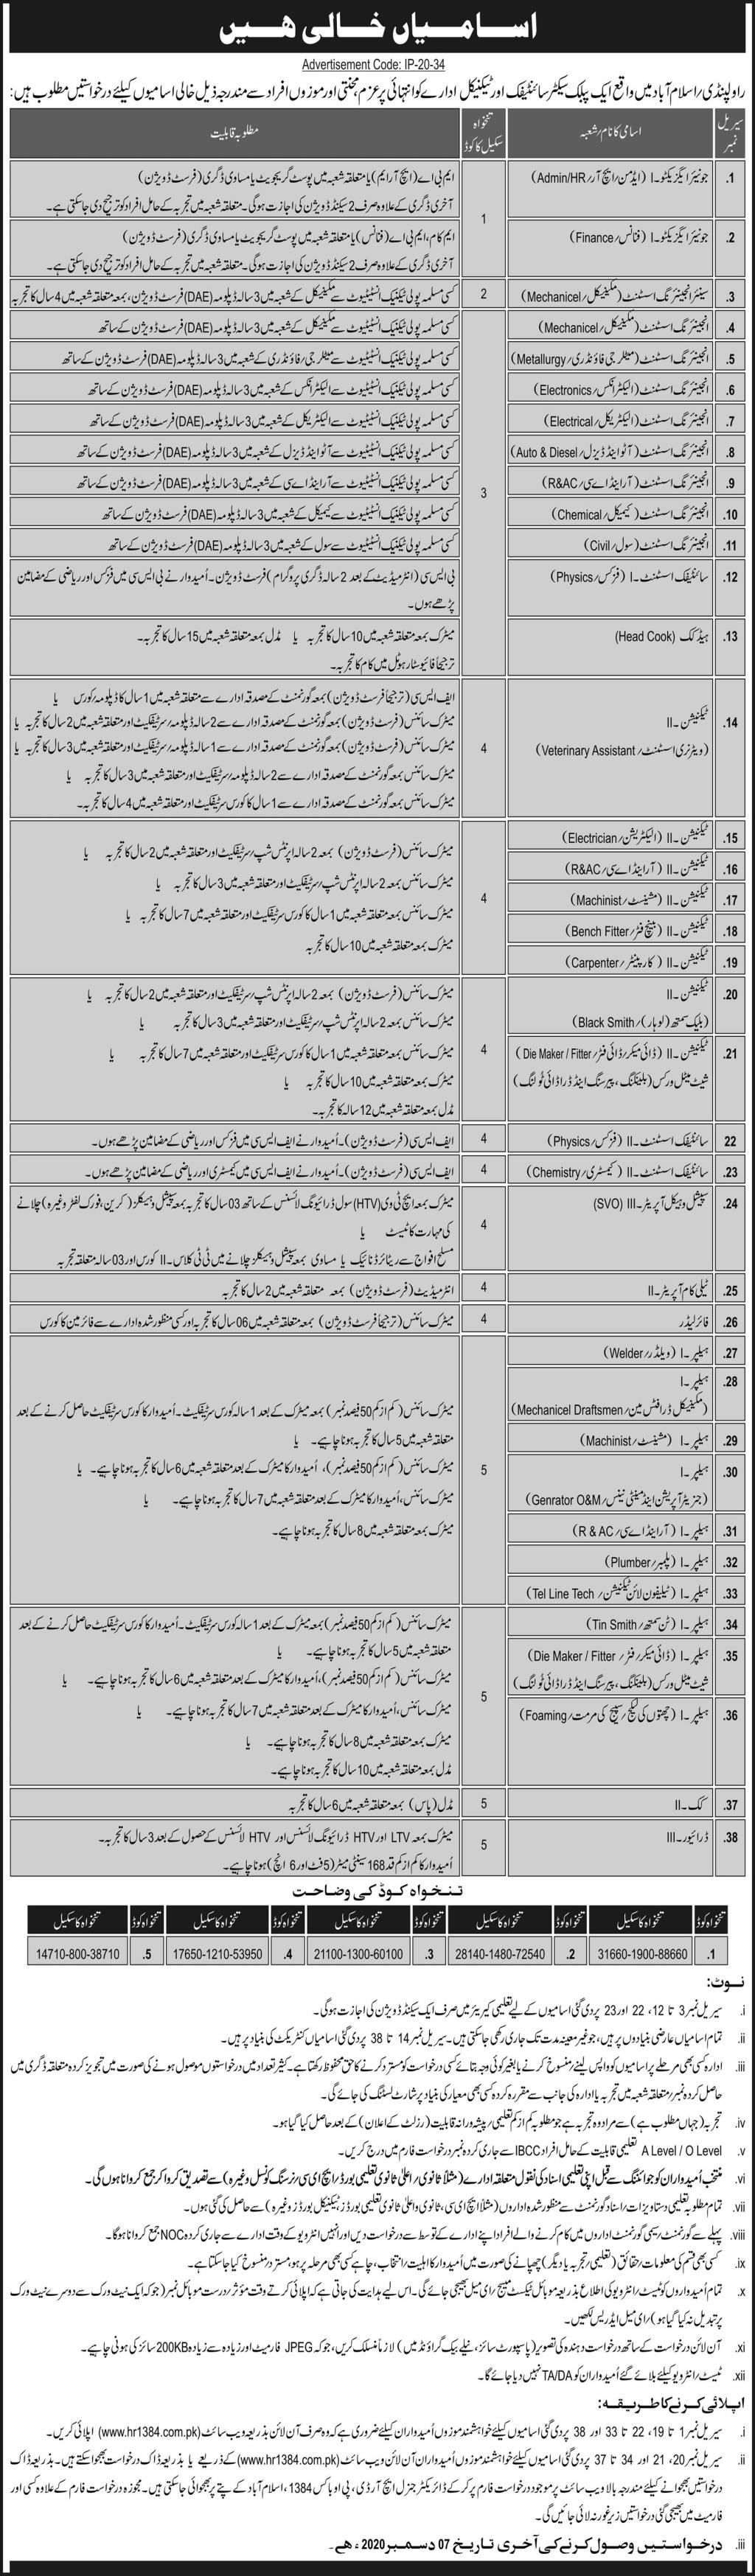 Public Sector Scientific & Technical Organization jobs newspaper ad for Telecom Operator in Islamabad, Rawalpindi